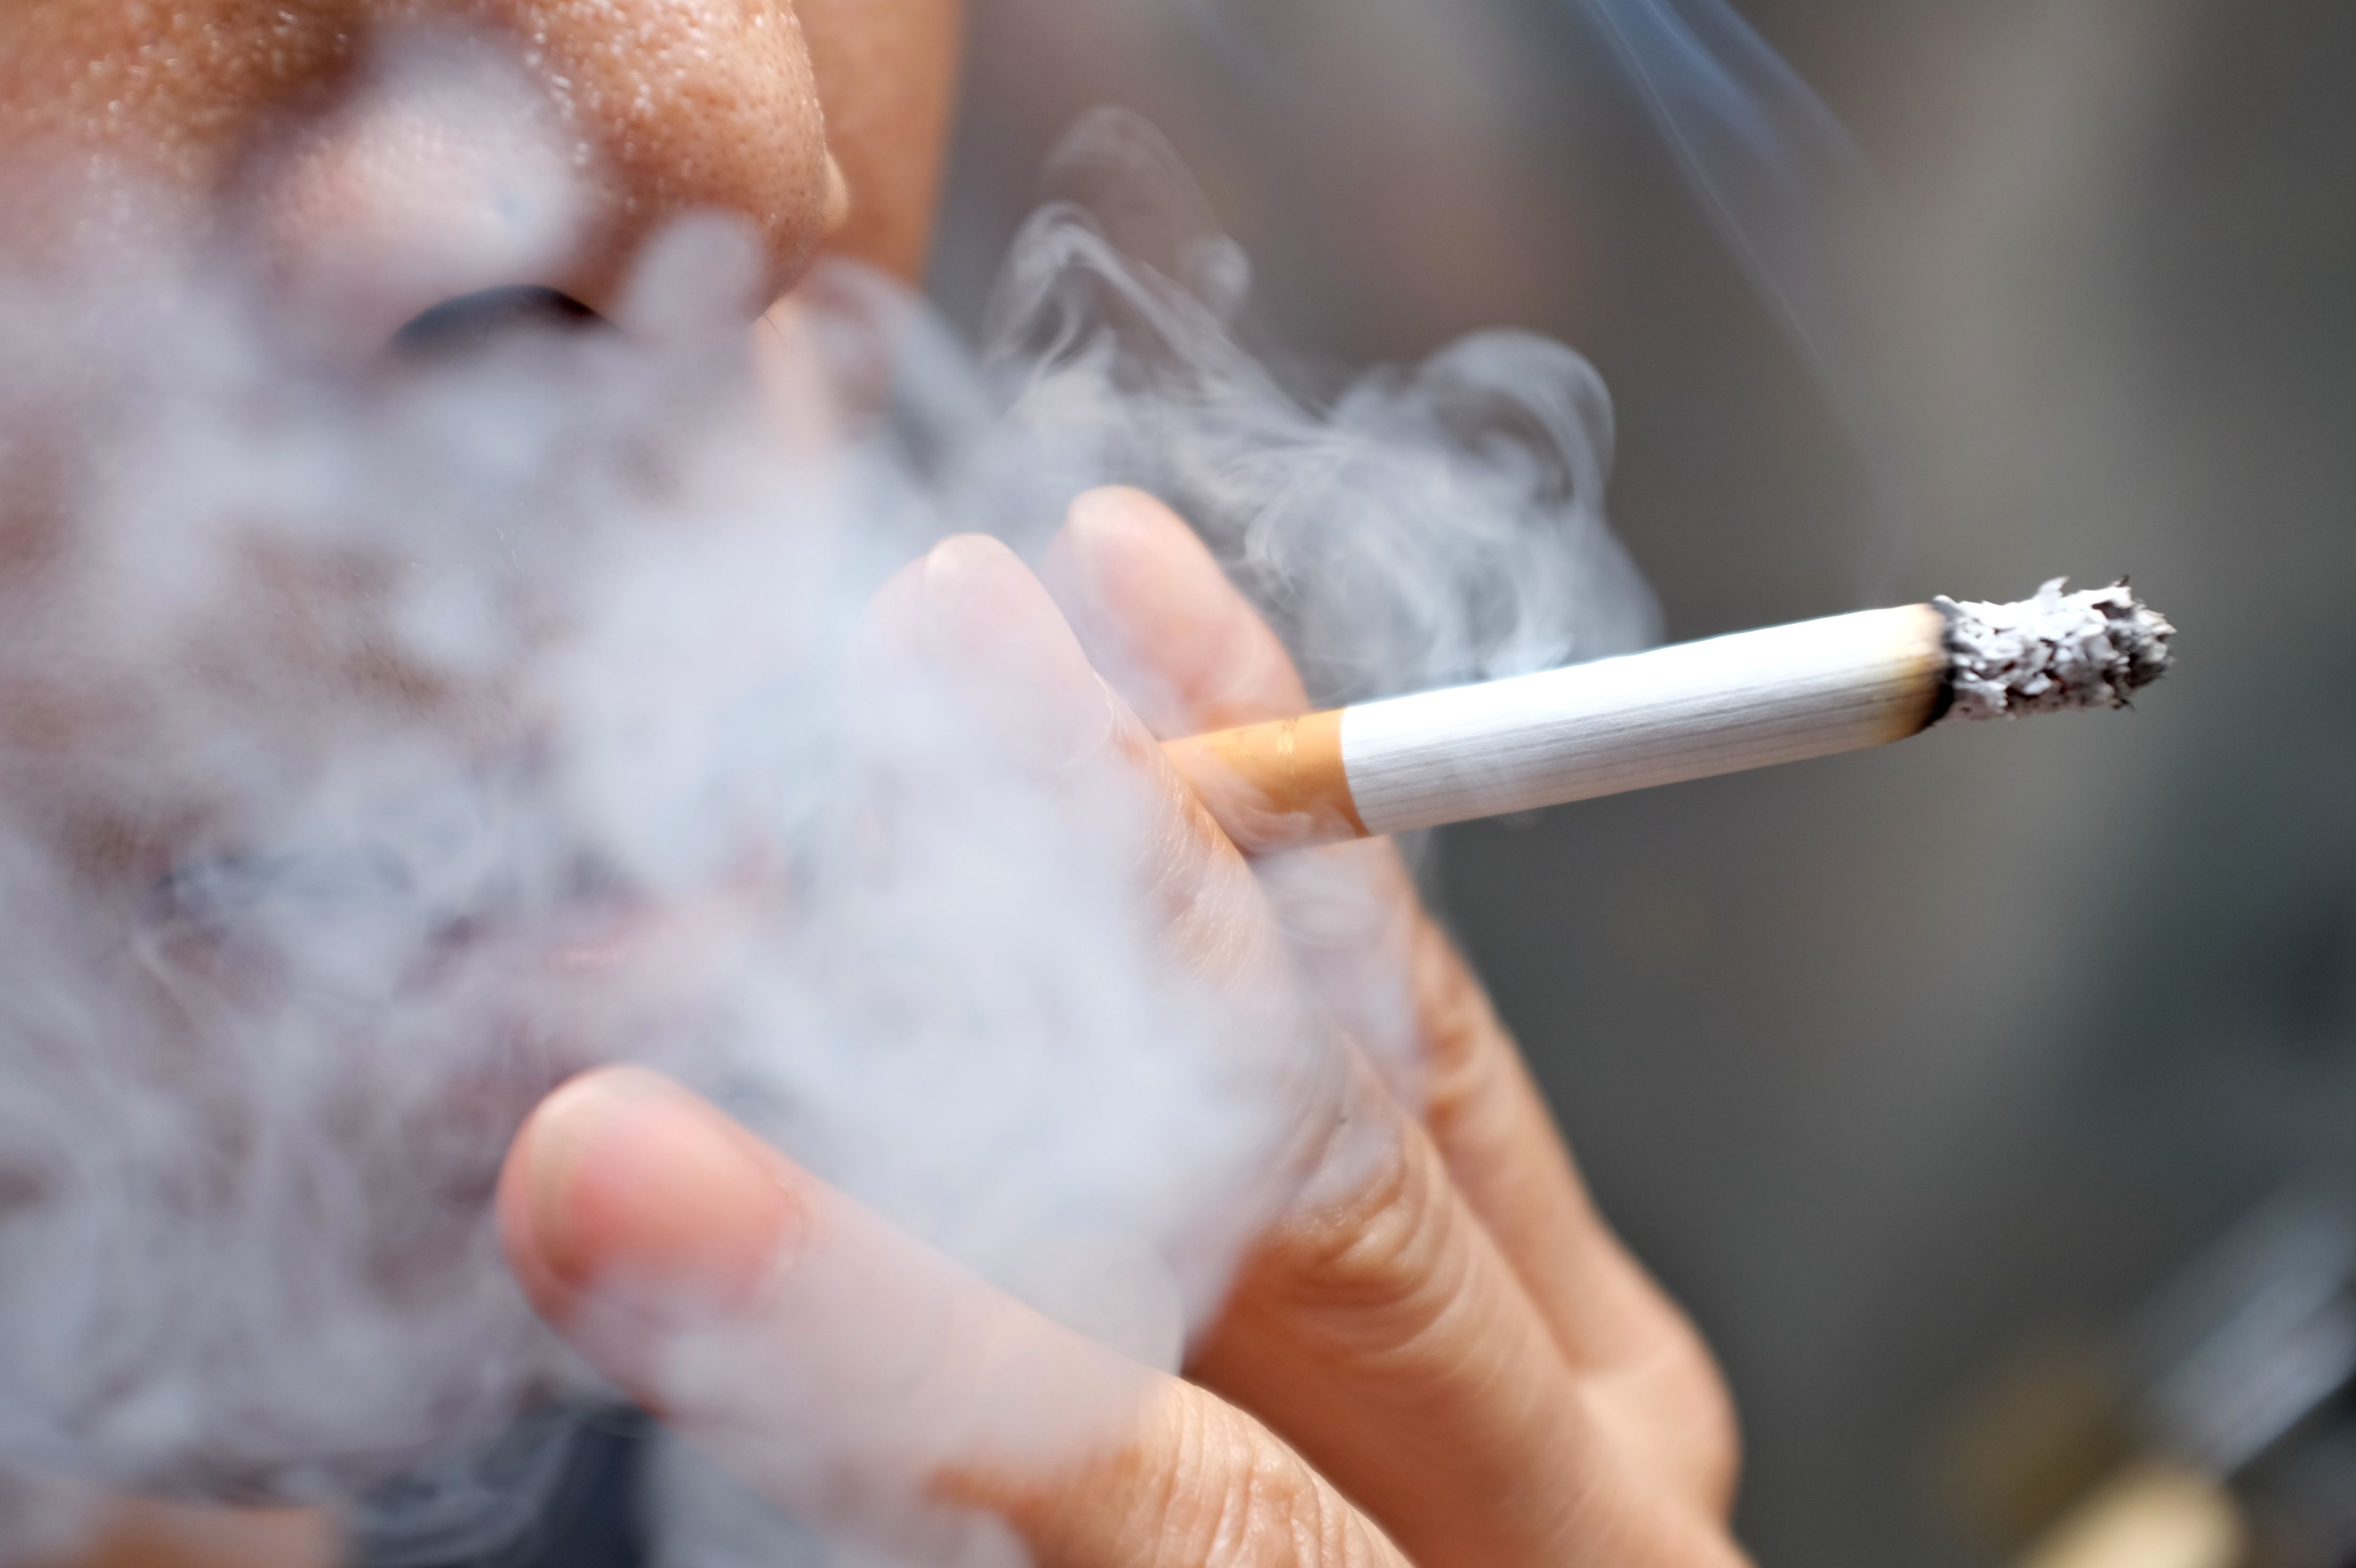 an image of a person smoking for social smoker article